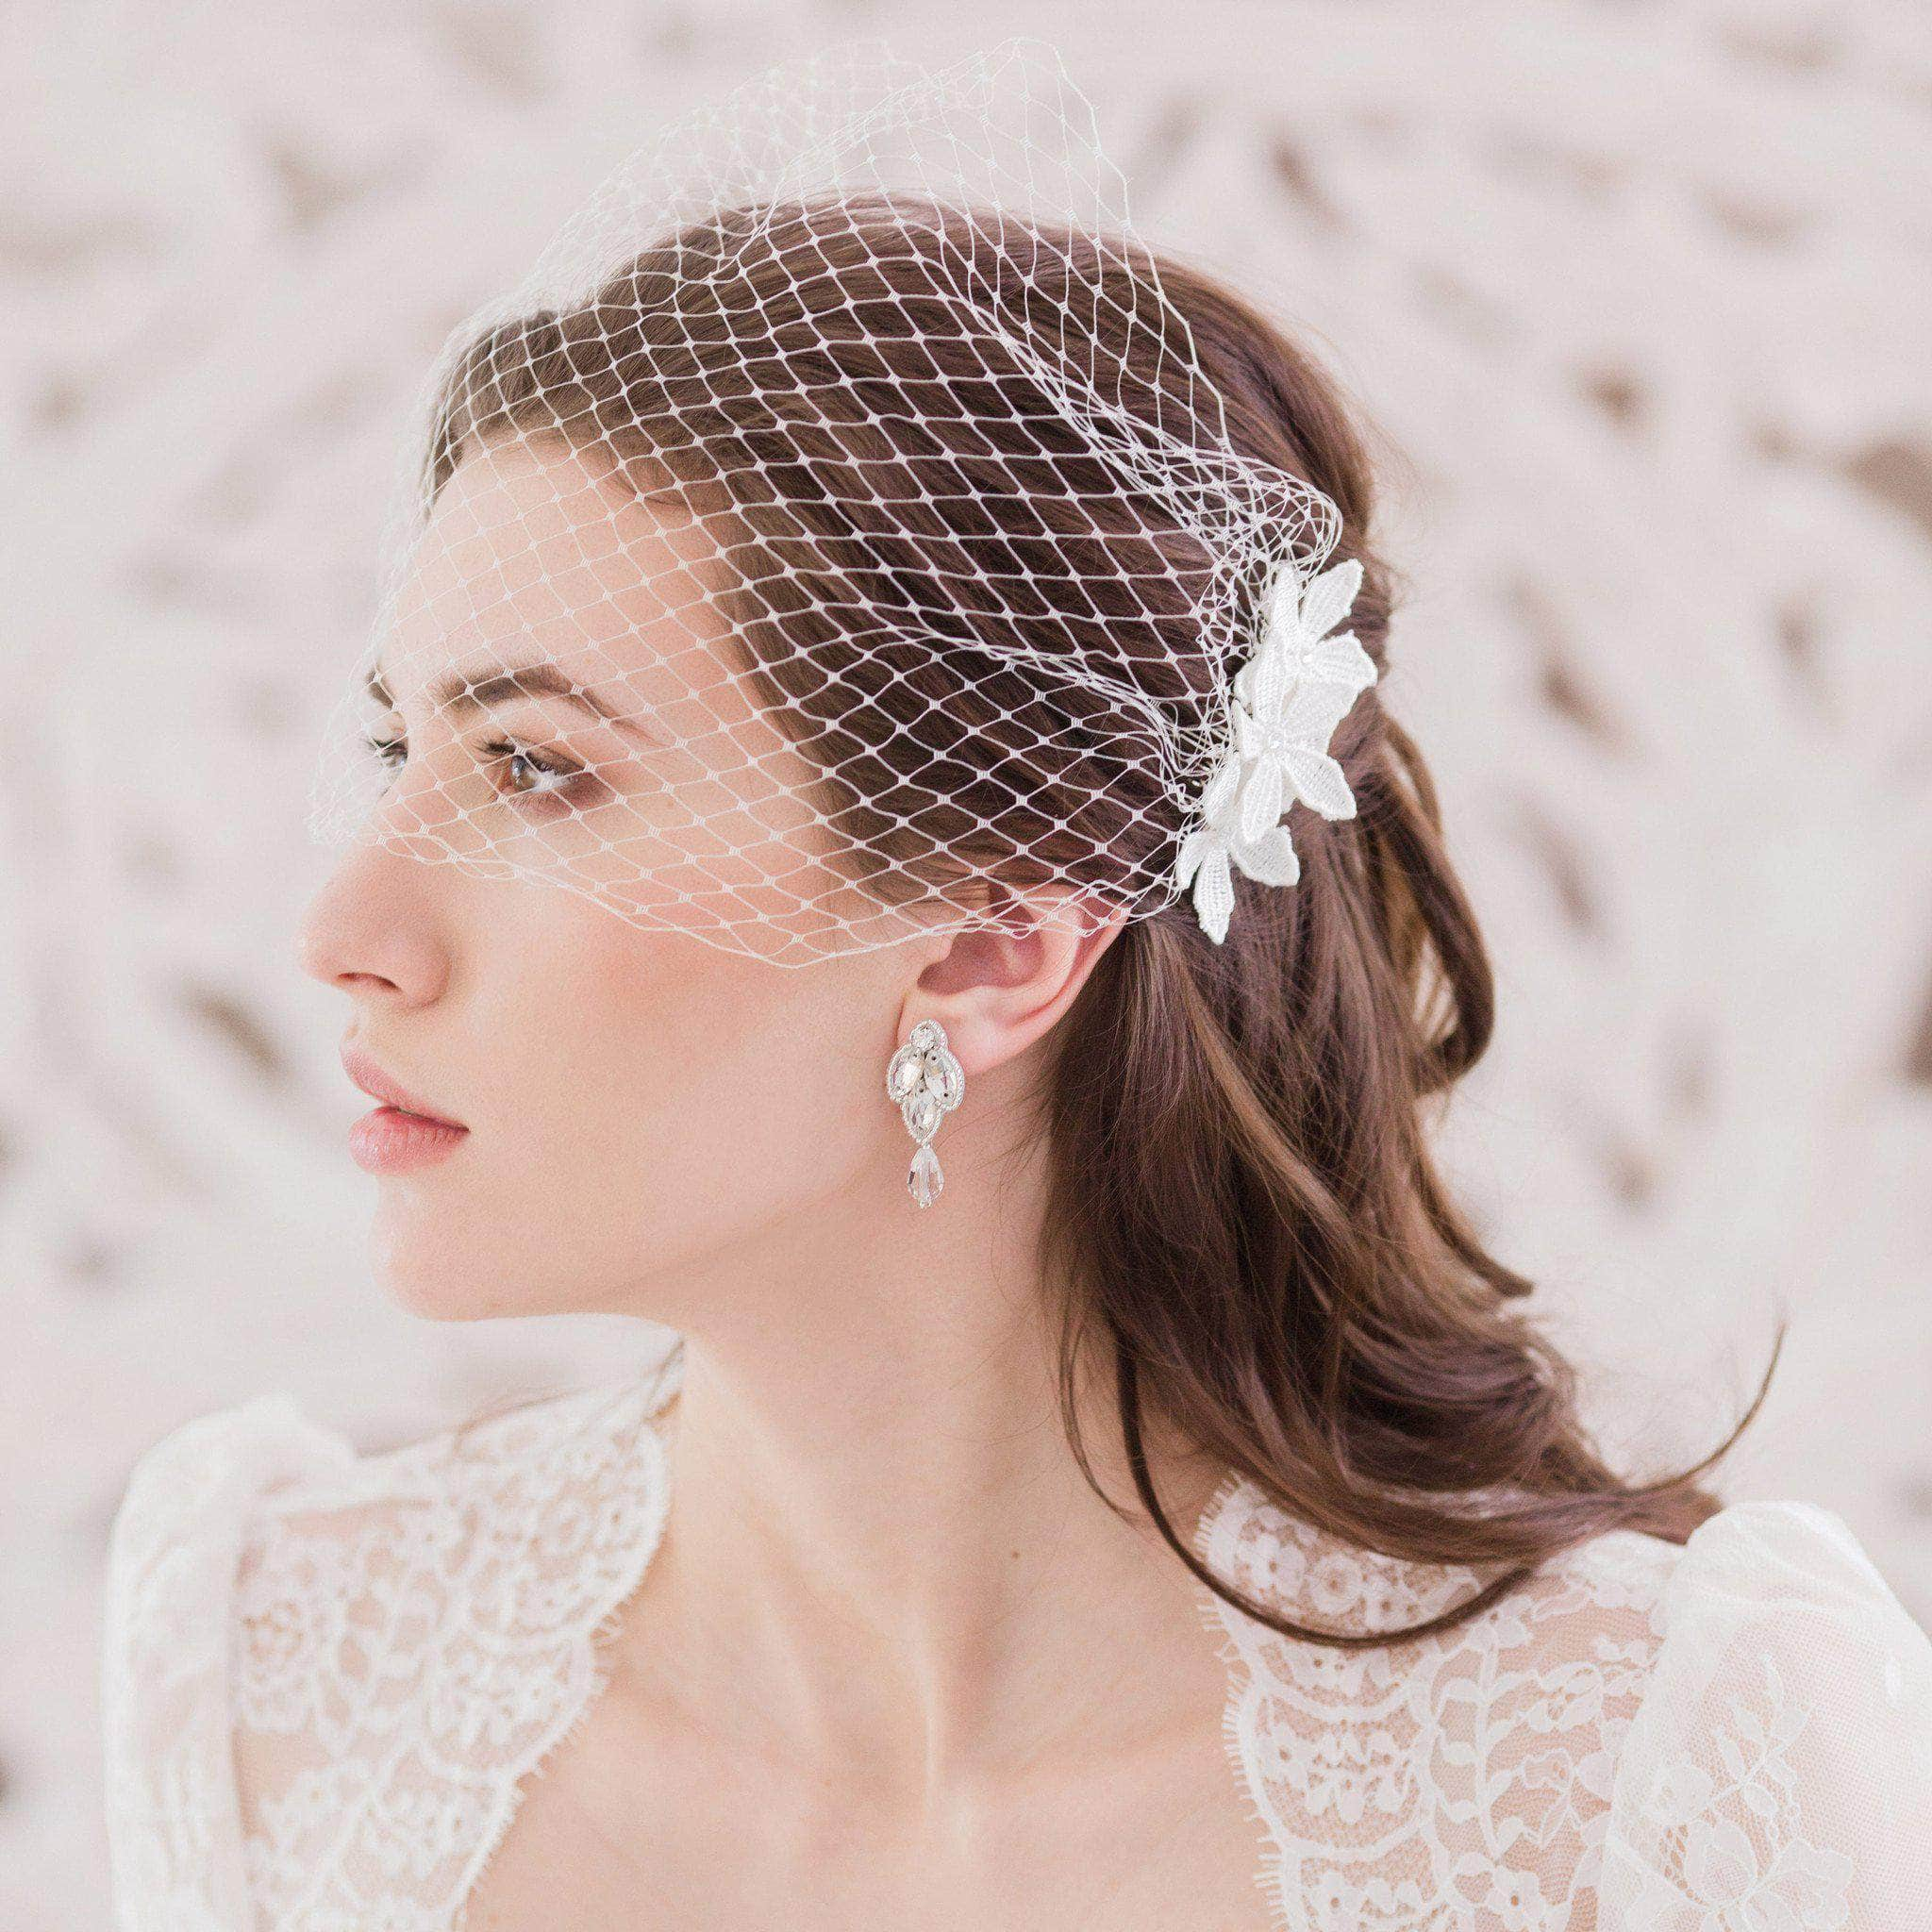 Embellished bandeau wedding veil of Russian net - 'Alexandrova' | Britten Weddings